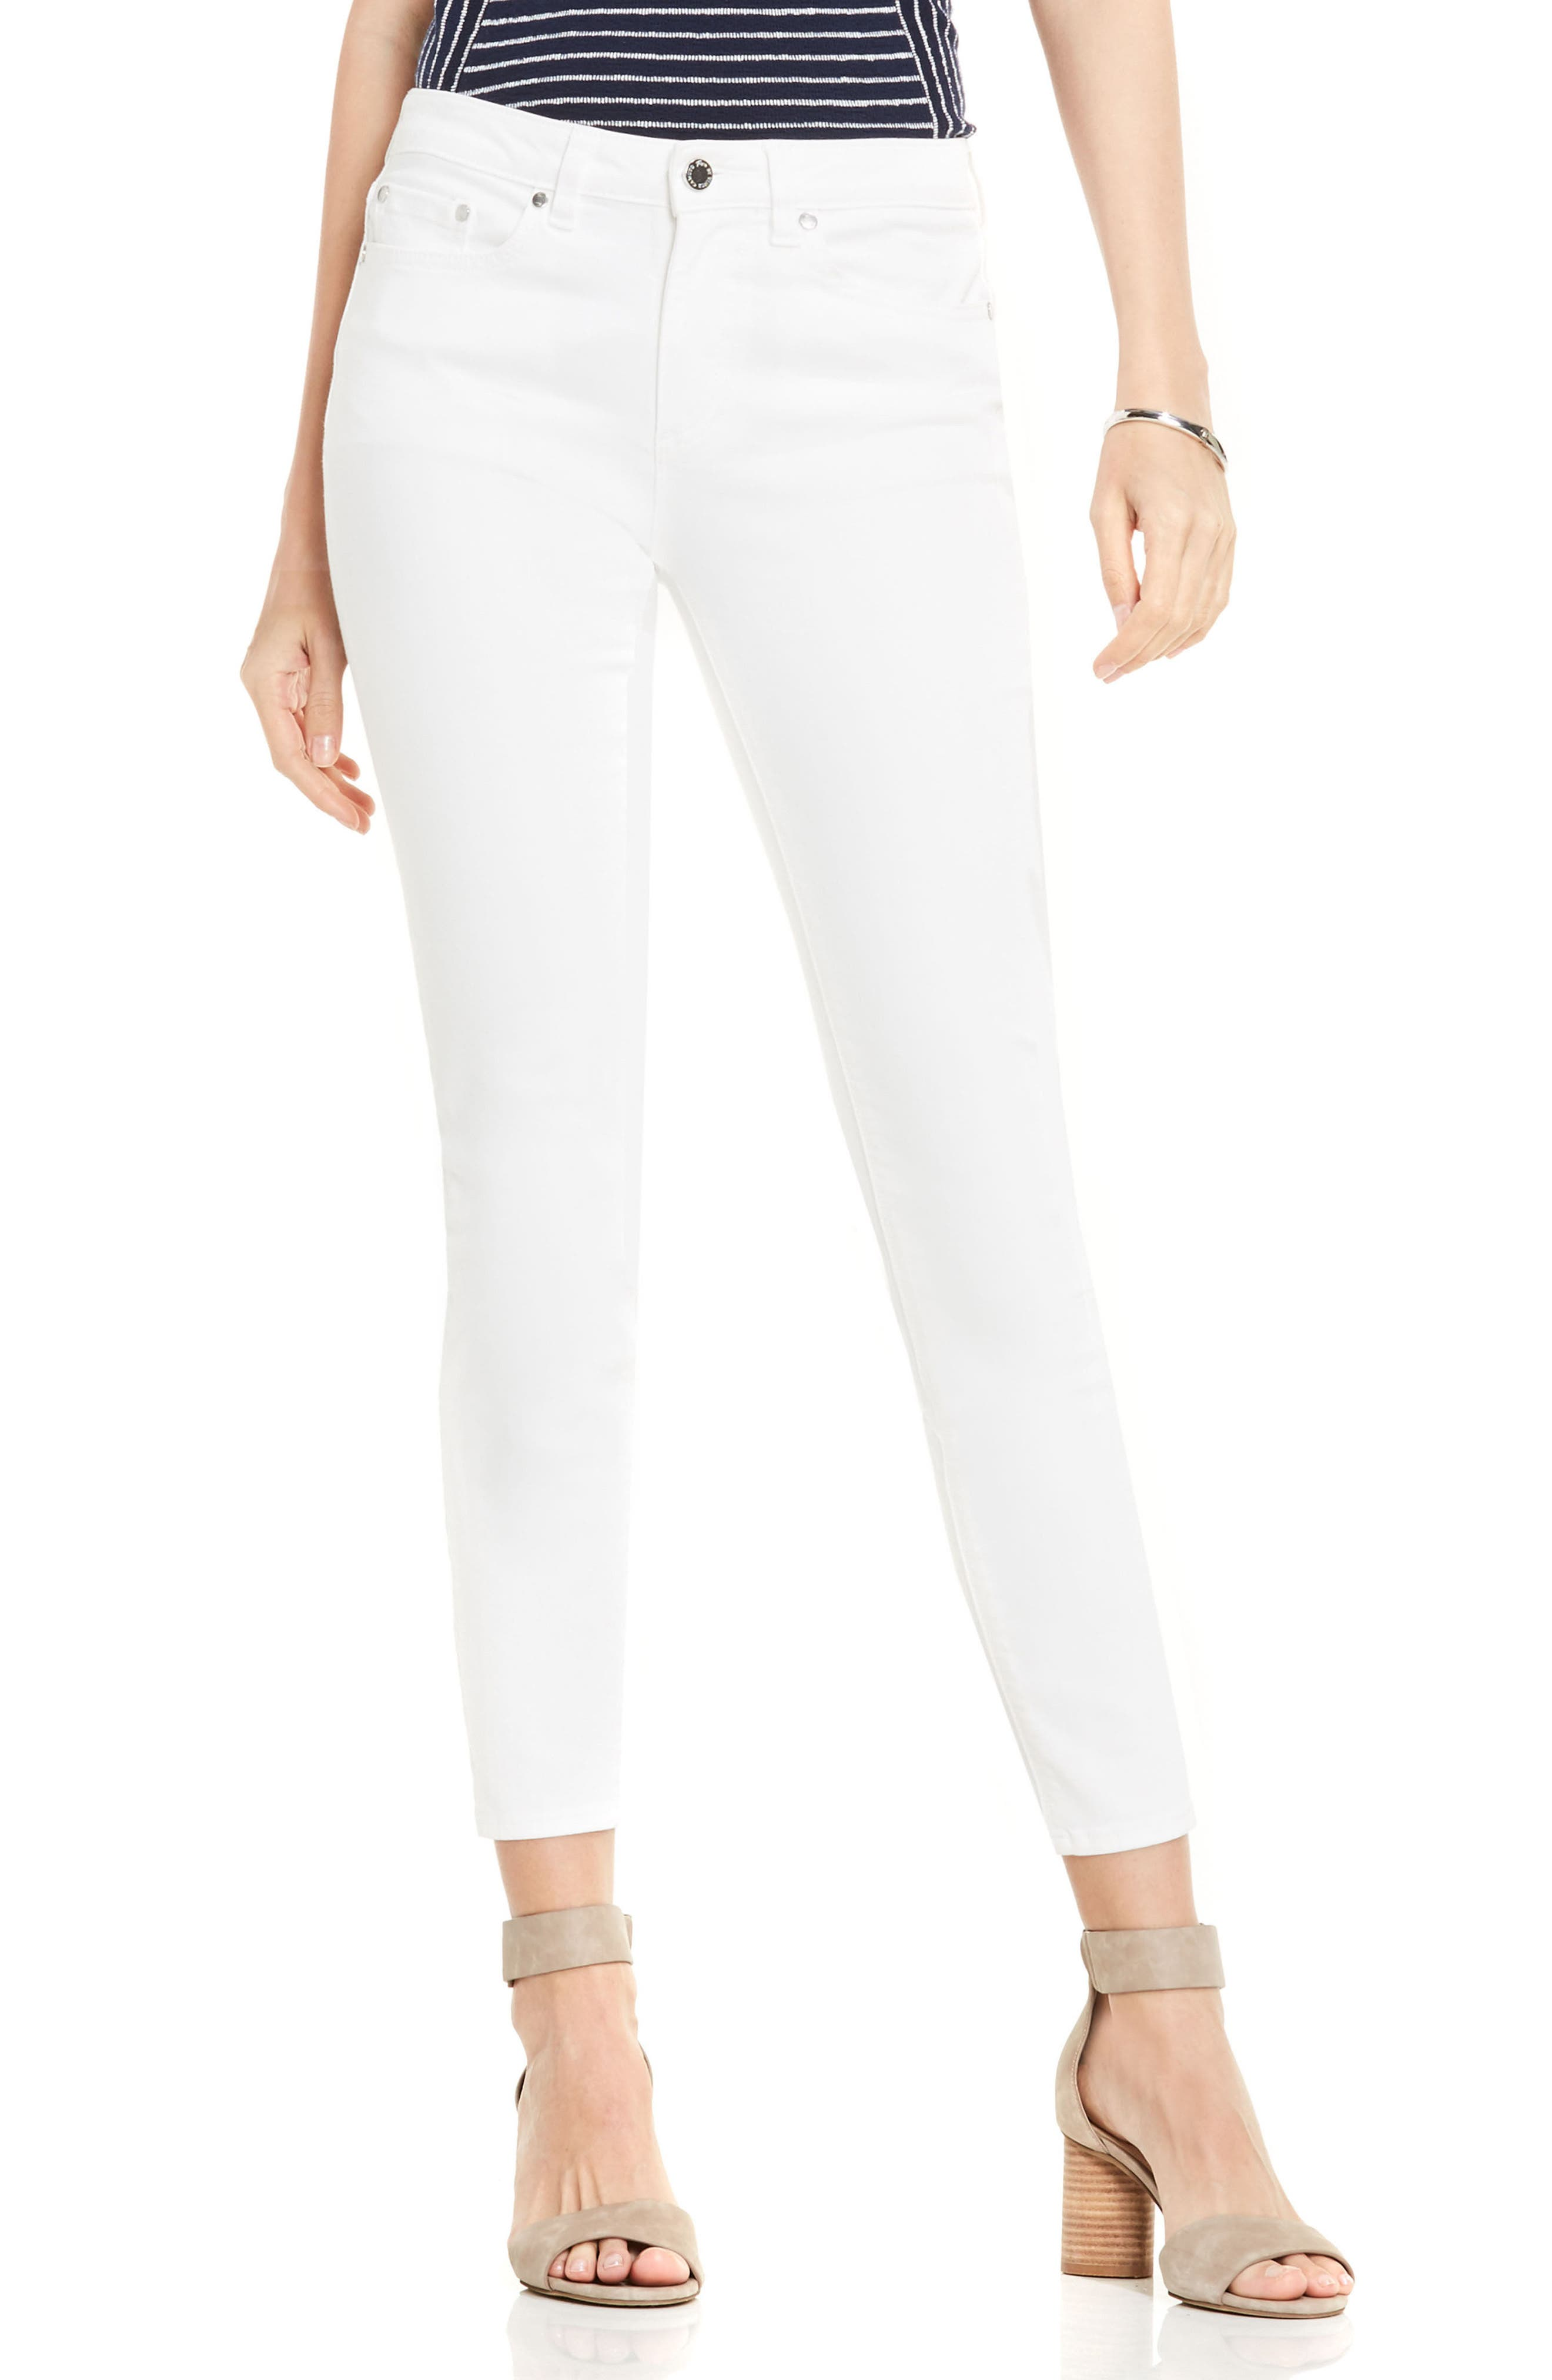 Alternate Image 1 Selected - Two by Vince Camuto 5-Pocket Jeans